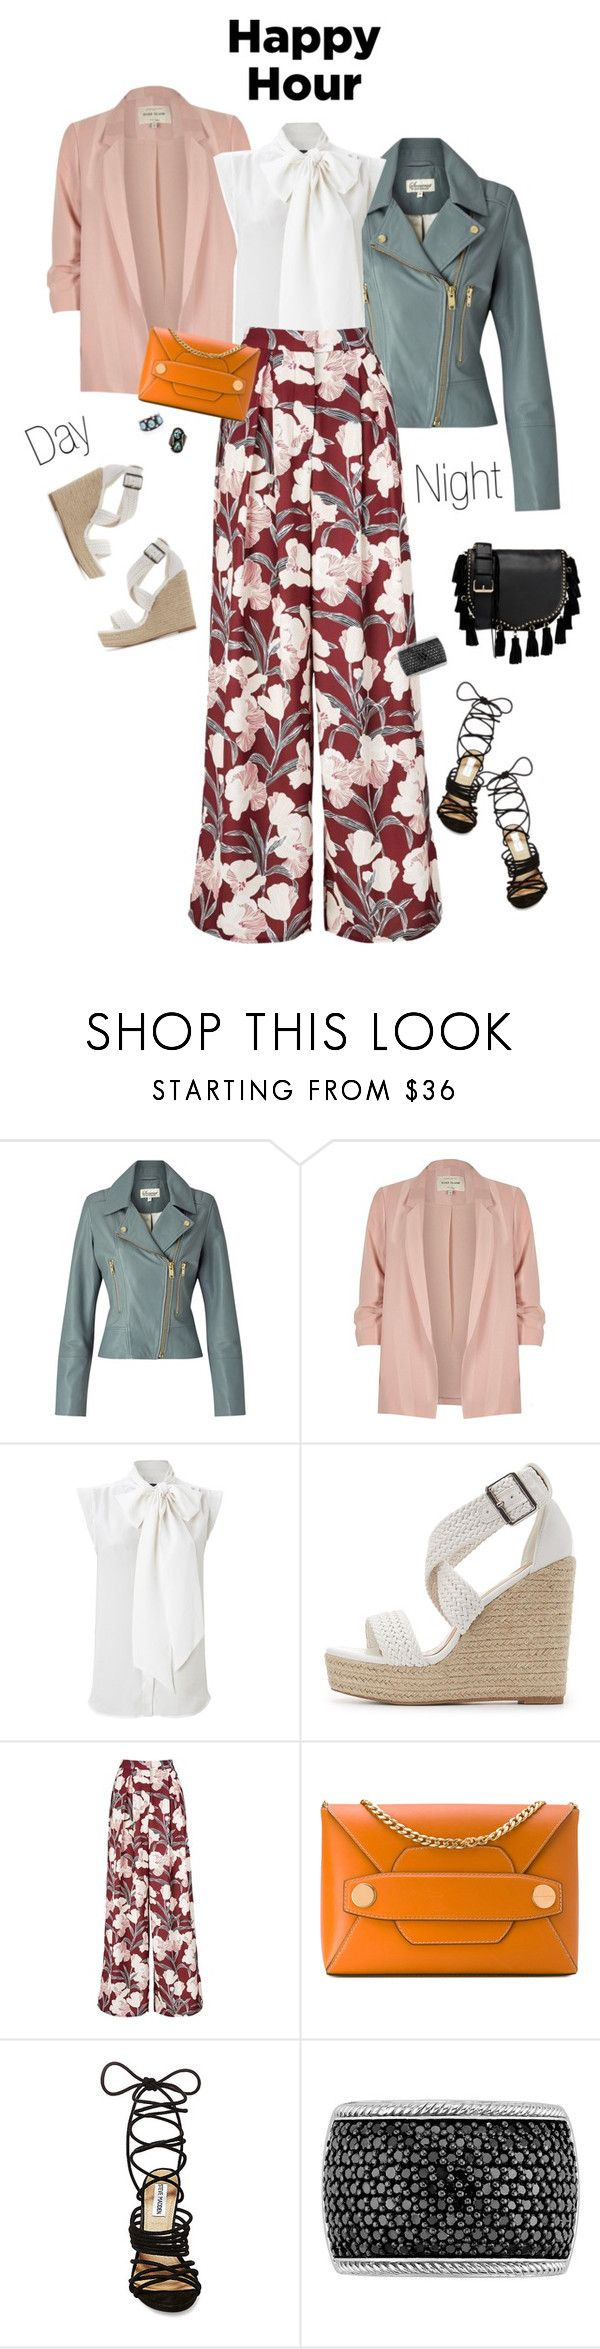 """""""2017: Happy Hour"""" by rockerchick21 ❤ liked on Polyvore featuring Somerset by Alice Temperley, River Island, French Connection, Charlotte Russe, Keepsake the Label, STELLA McCARTNEY, Steve Madden and Rebecca Minkoff"""